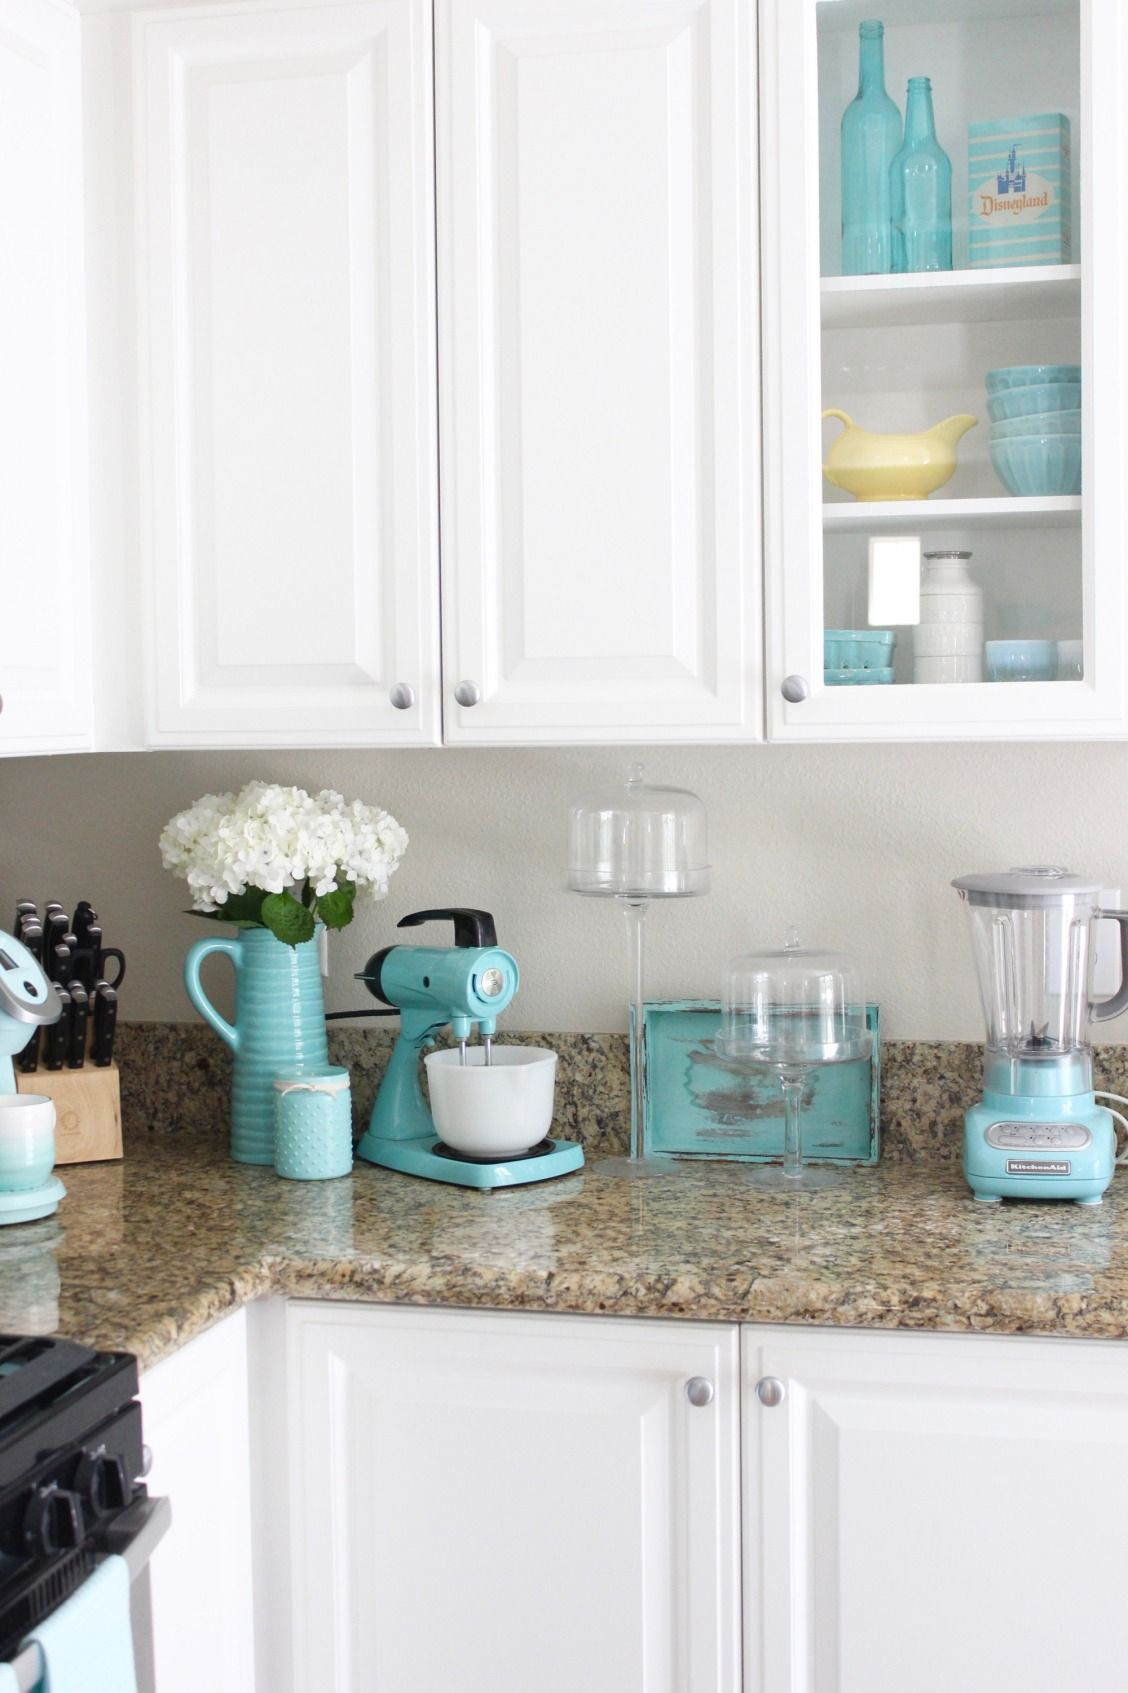 There S Just Something Ahhhh About Aqua We Love How Breezydesign Used It In Appliances And Acce Turquoise Kitchen Decor Blue Kitchen Decor Teal Kitchen Decor